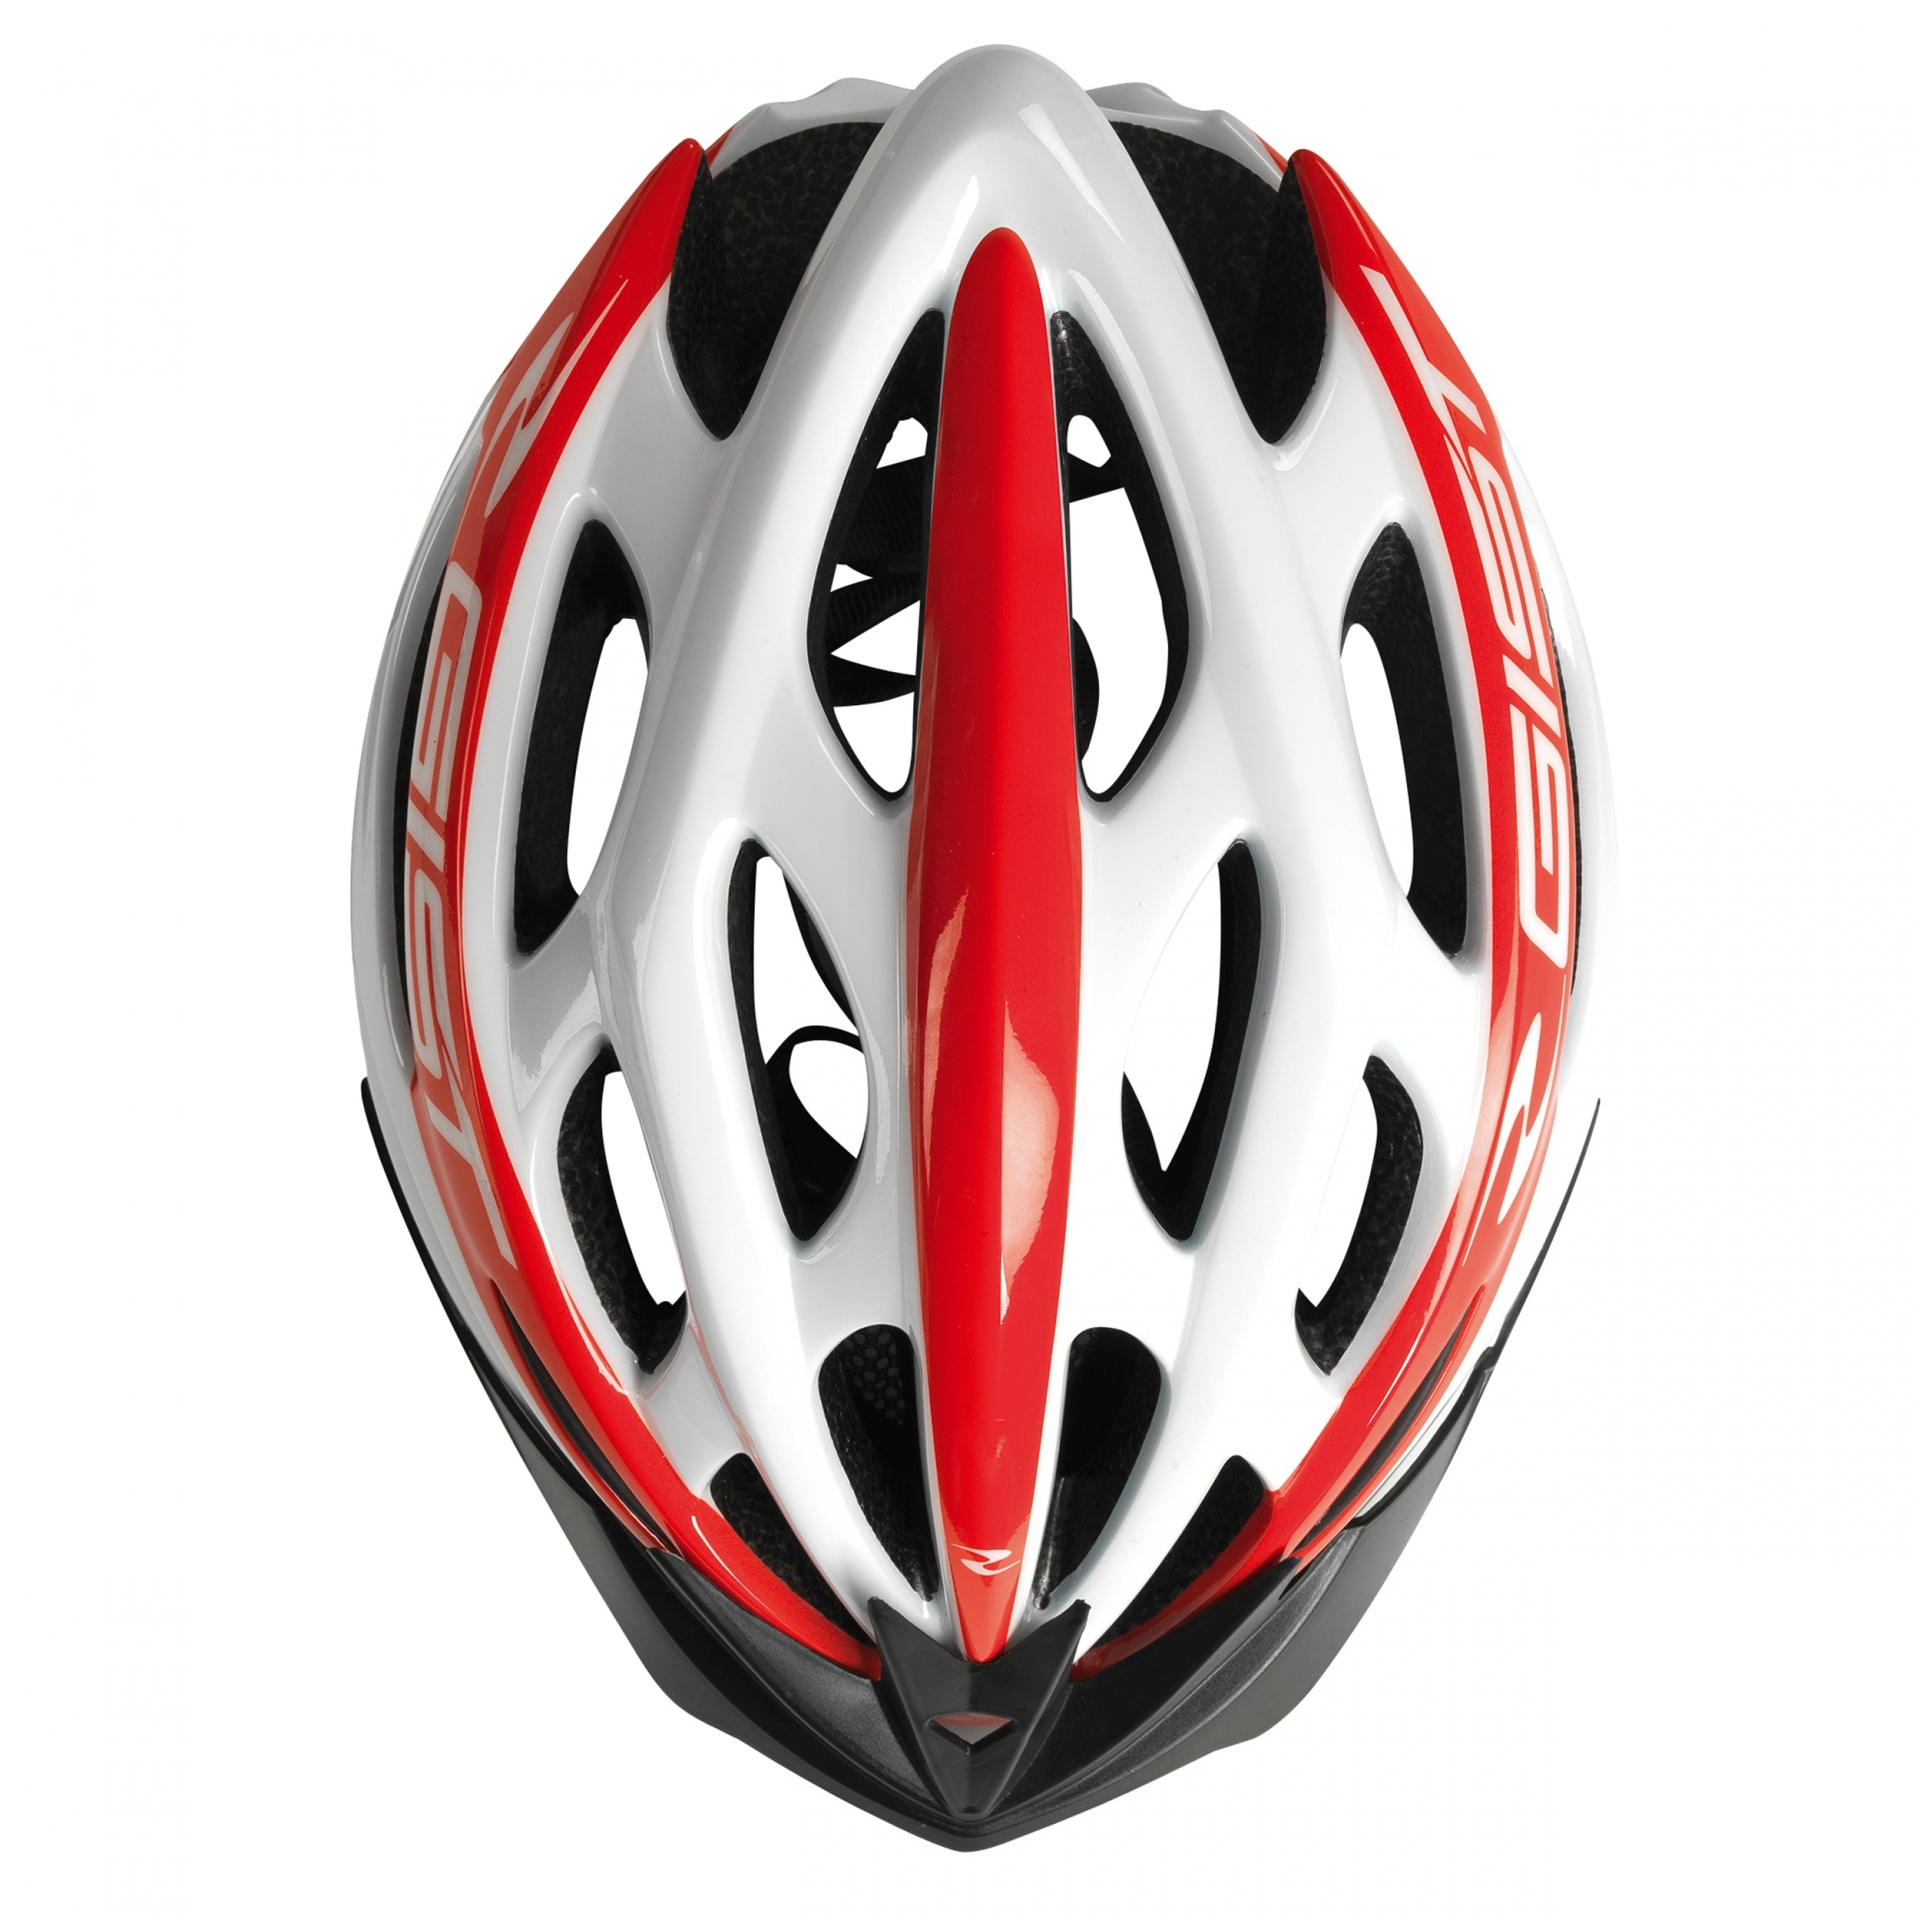 Casque Vélo GIST Faster Blanc/Rouge - 52-58 cm